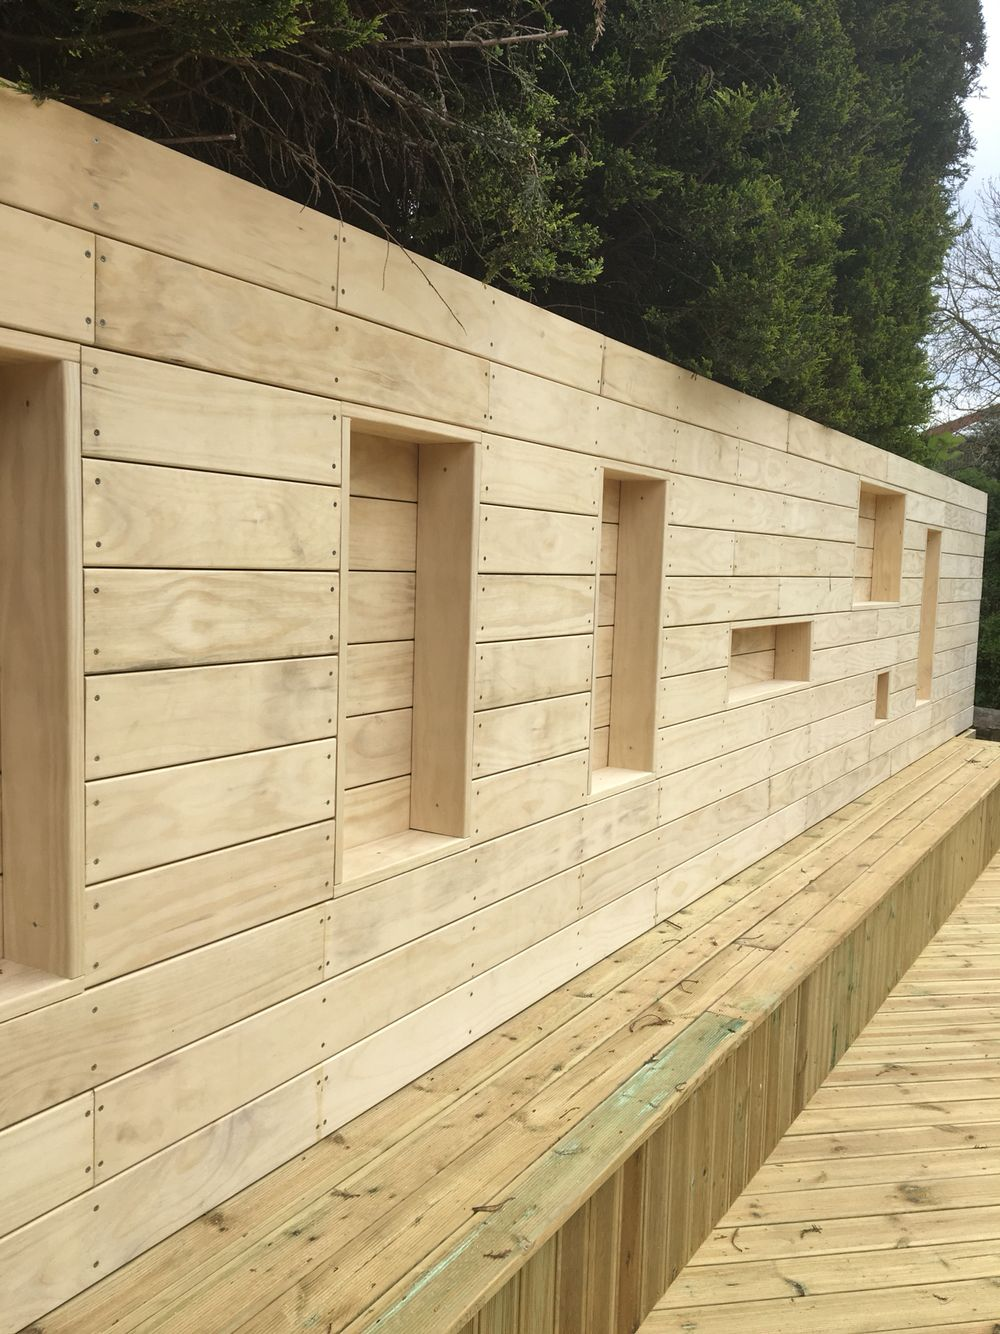 Accoya cladding with pencil bullnose. Feature wall with stainless ...